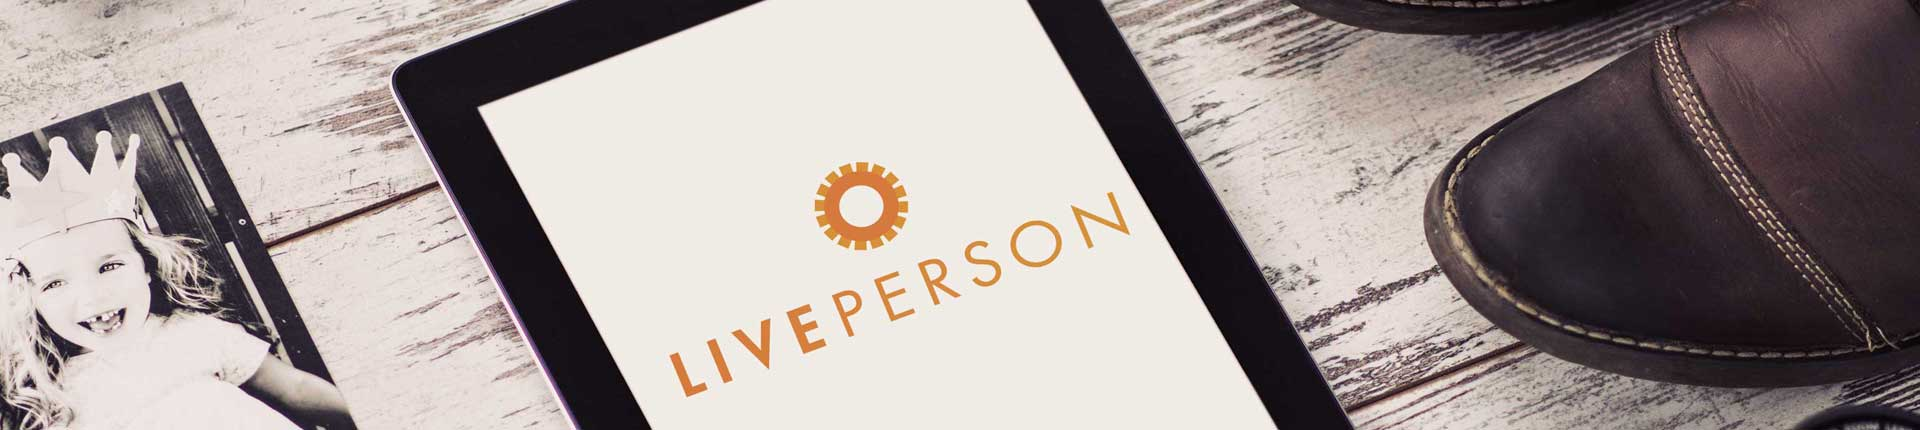 Liveperson - Mobile App Development